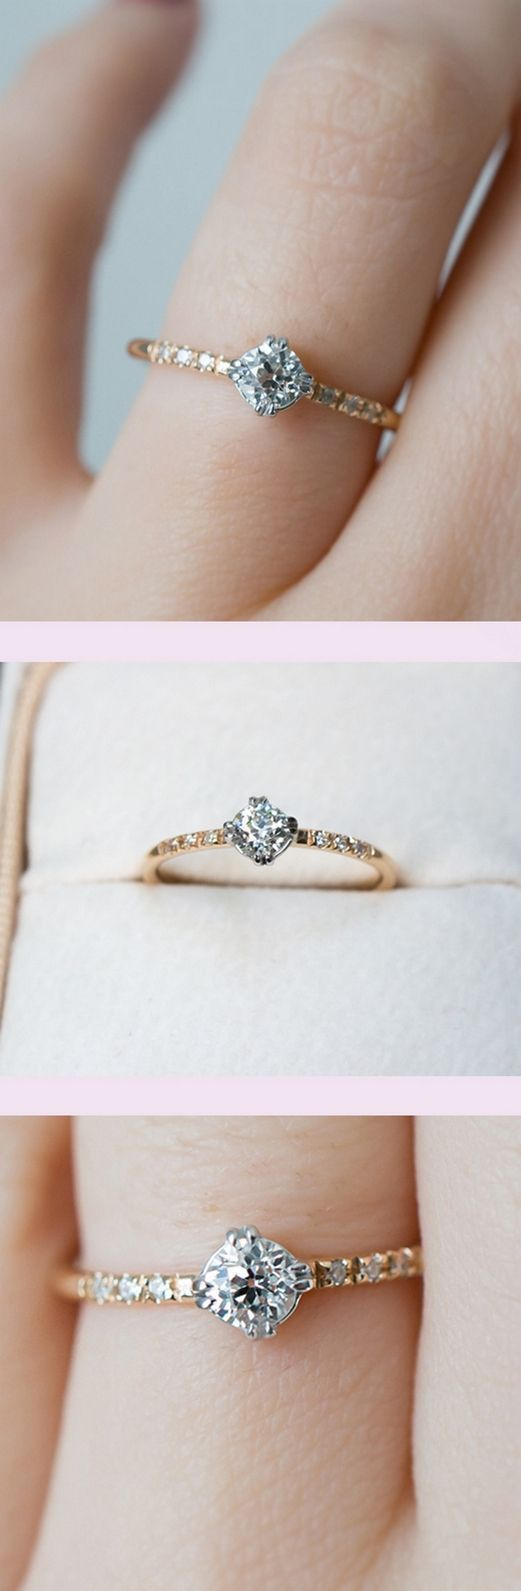 100+ Simple Vintage Engagement Rings Inspiration https://bridalore.com/2017/05/03/100-simple-vintage-engagement-rings-inspiration/ #engagementring #engagementrings